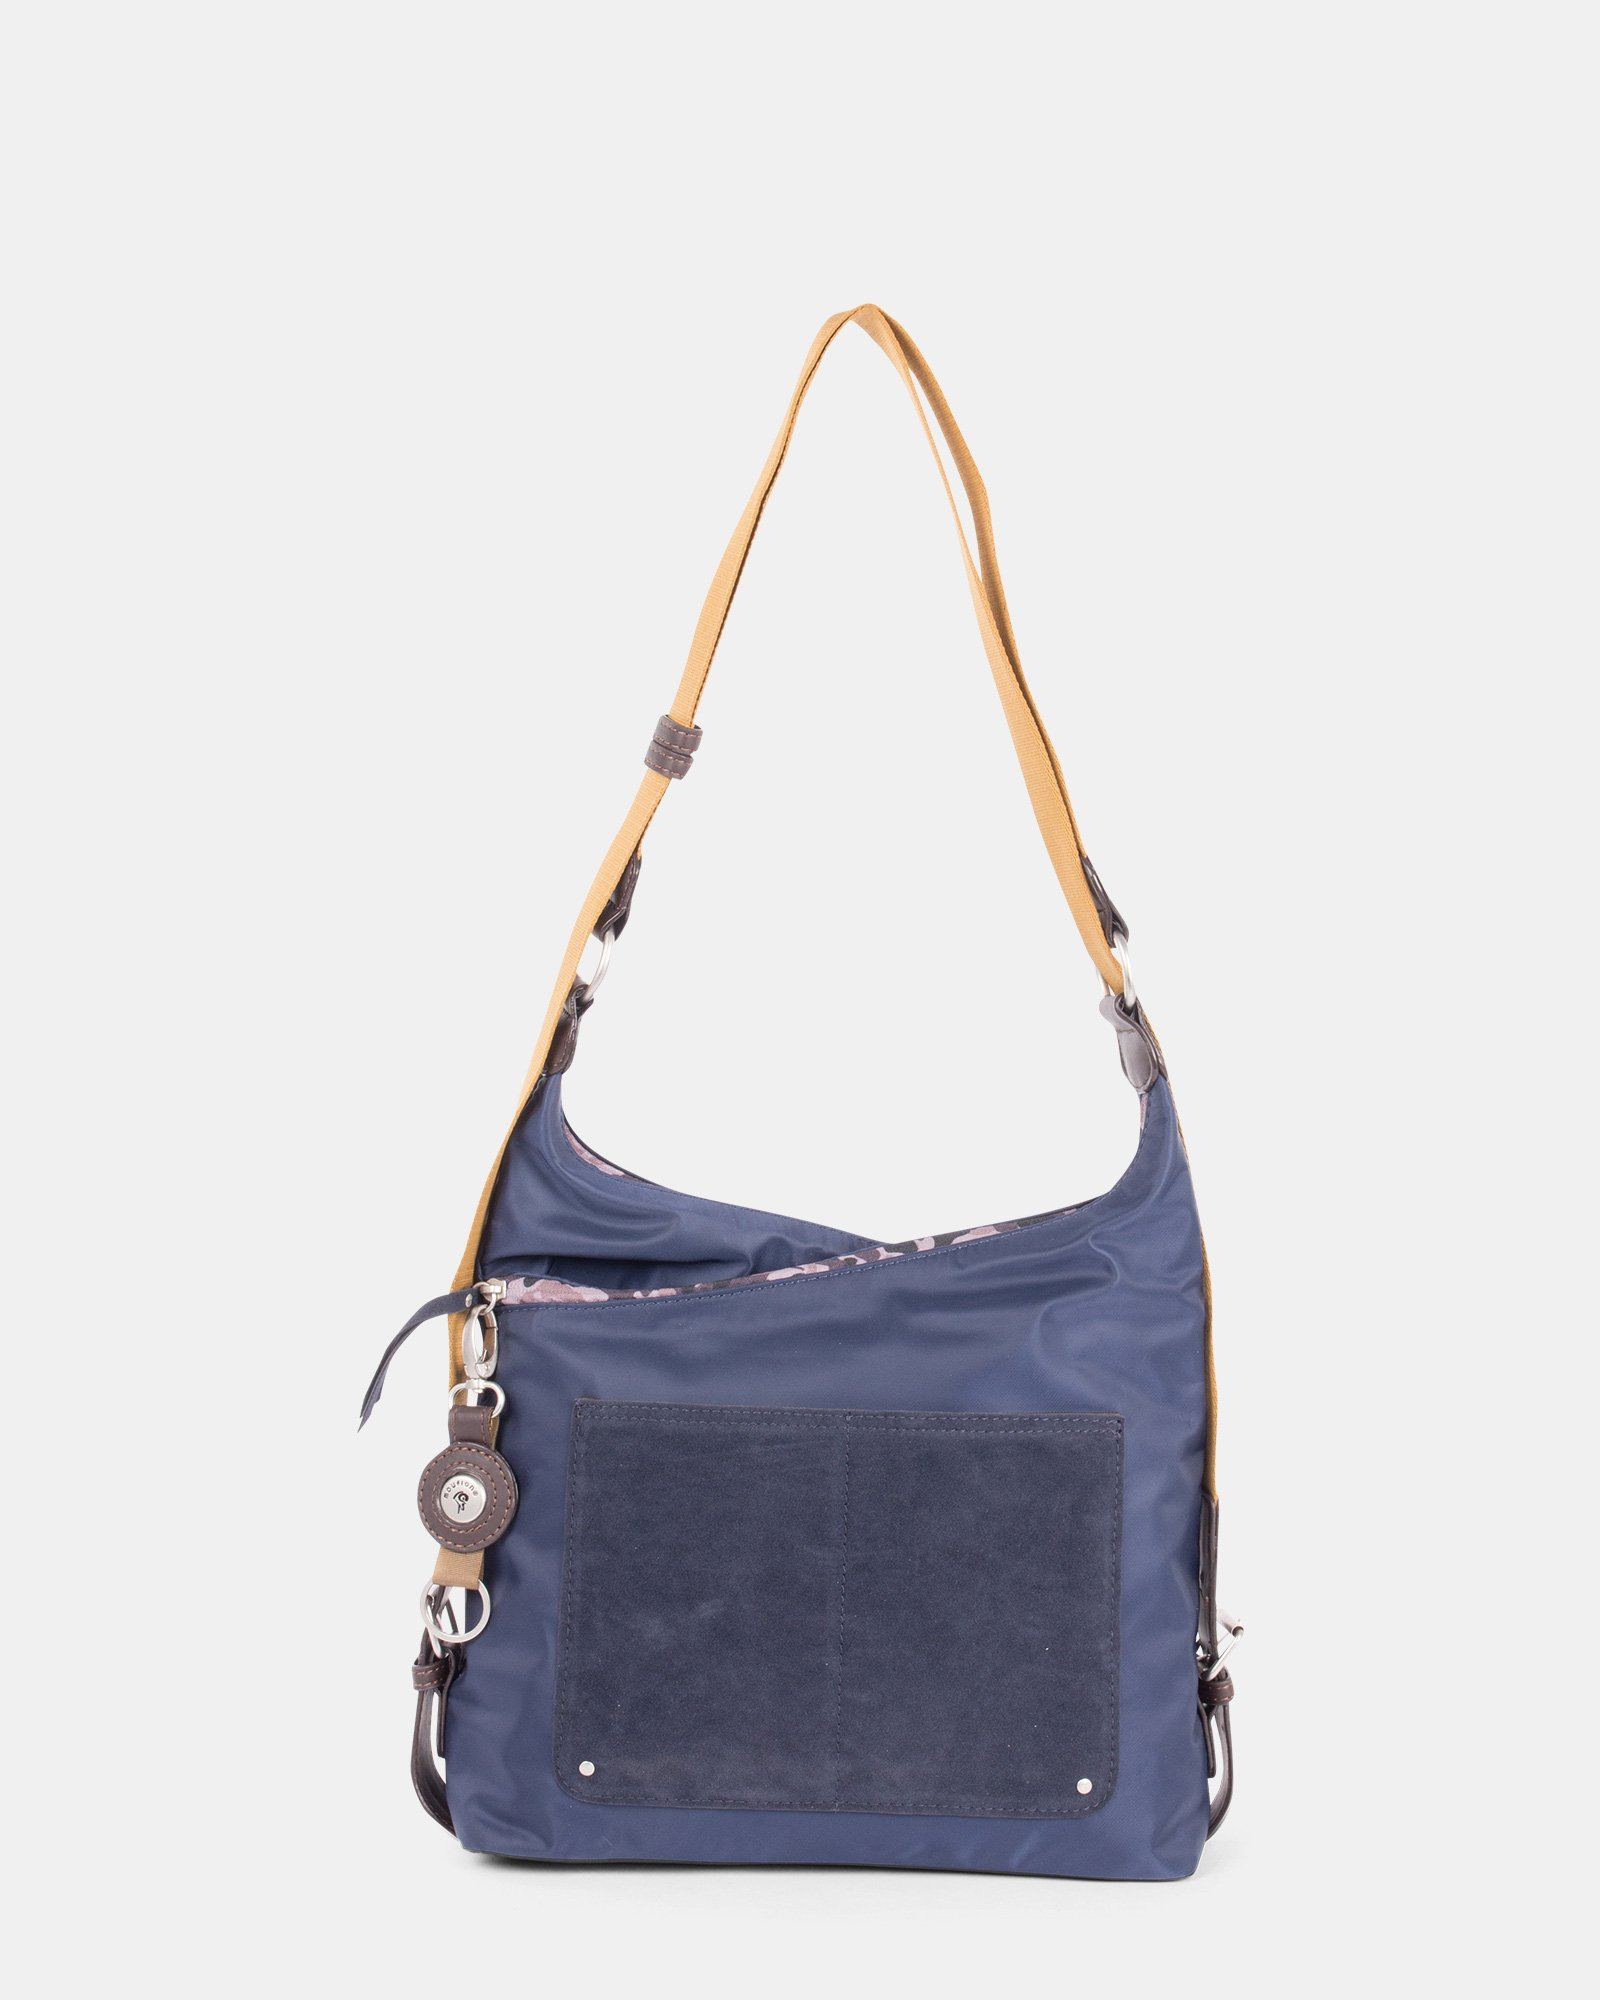 MILESTONE - Hobo bag - Mouflon - Zoom